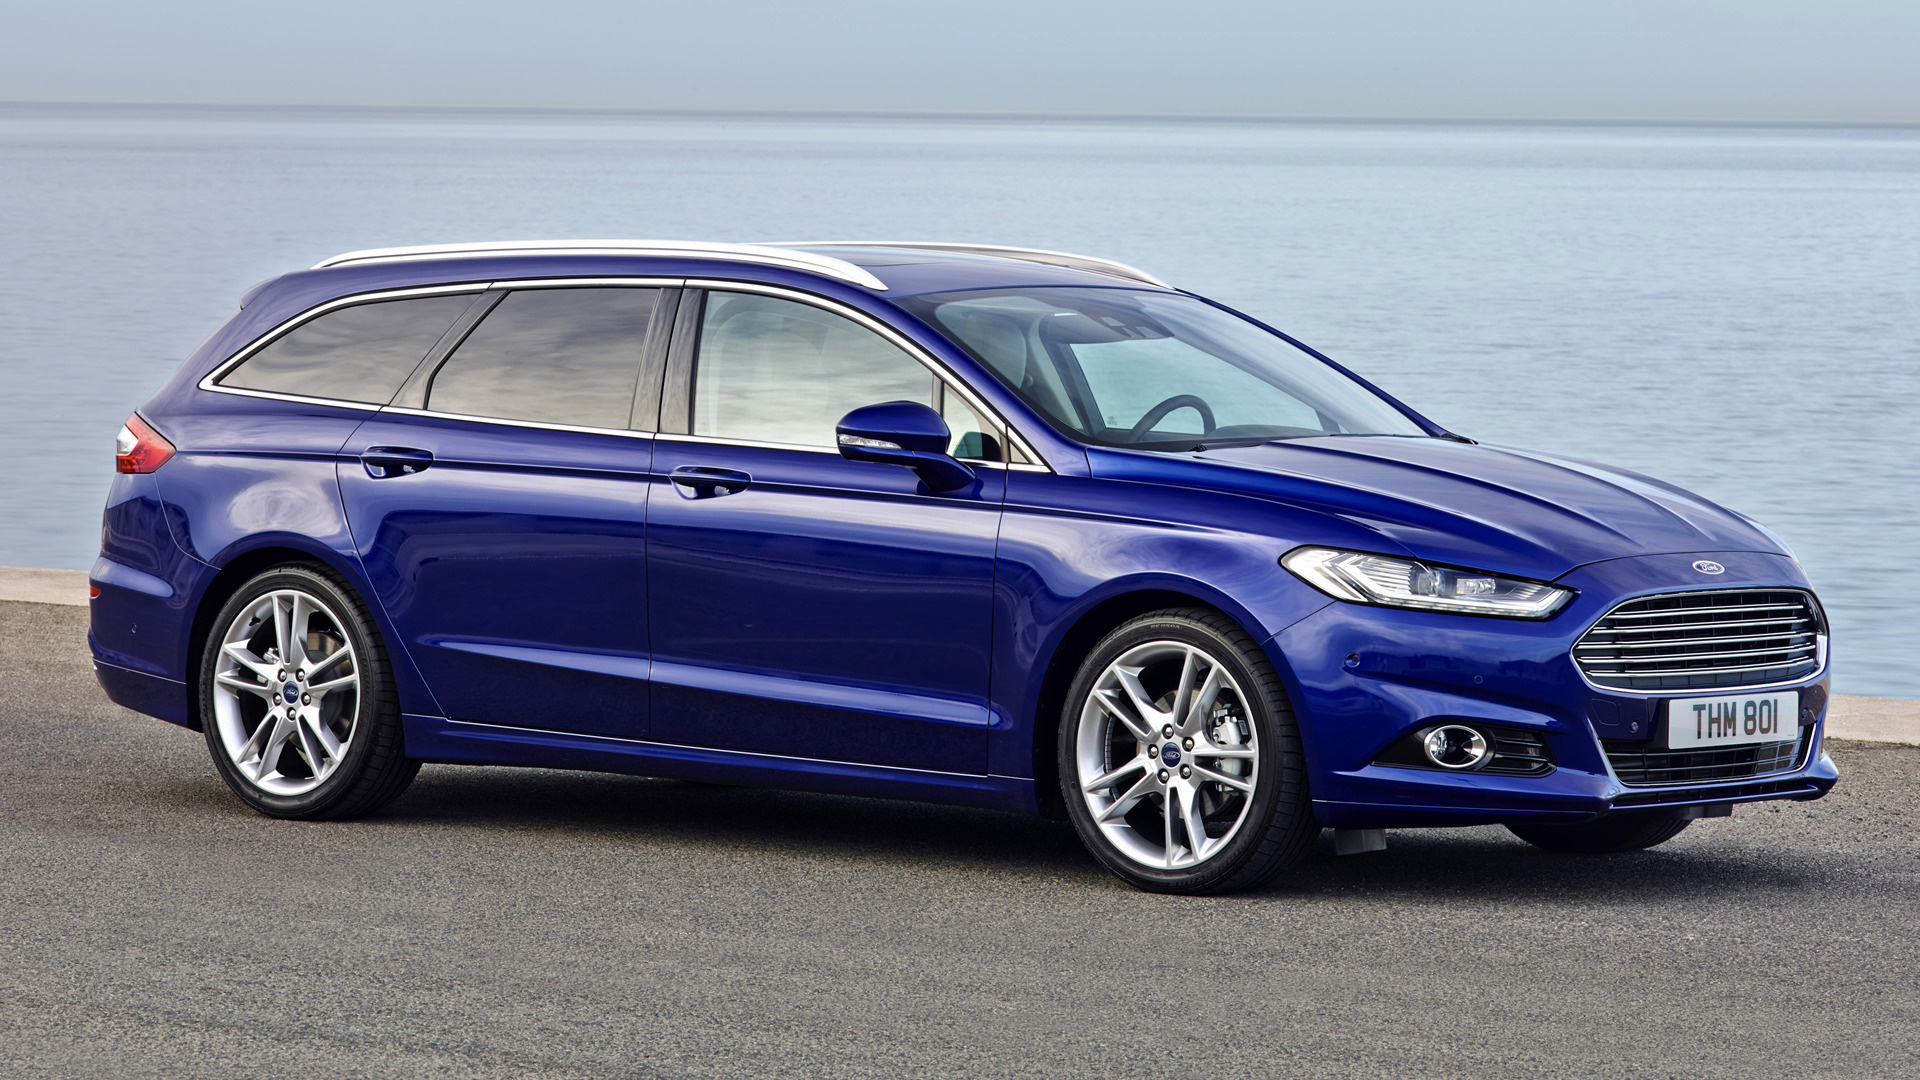 Ford Mondeo Turnier (2014) Wallpapers and HD Images - Car ...